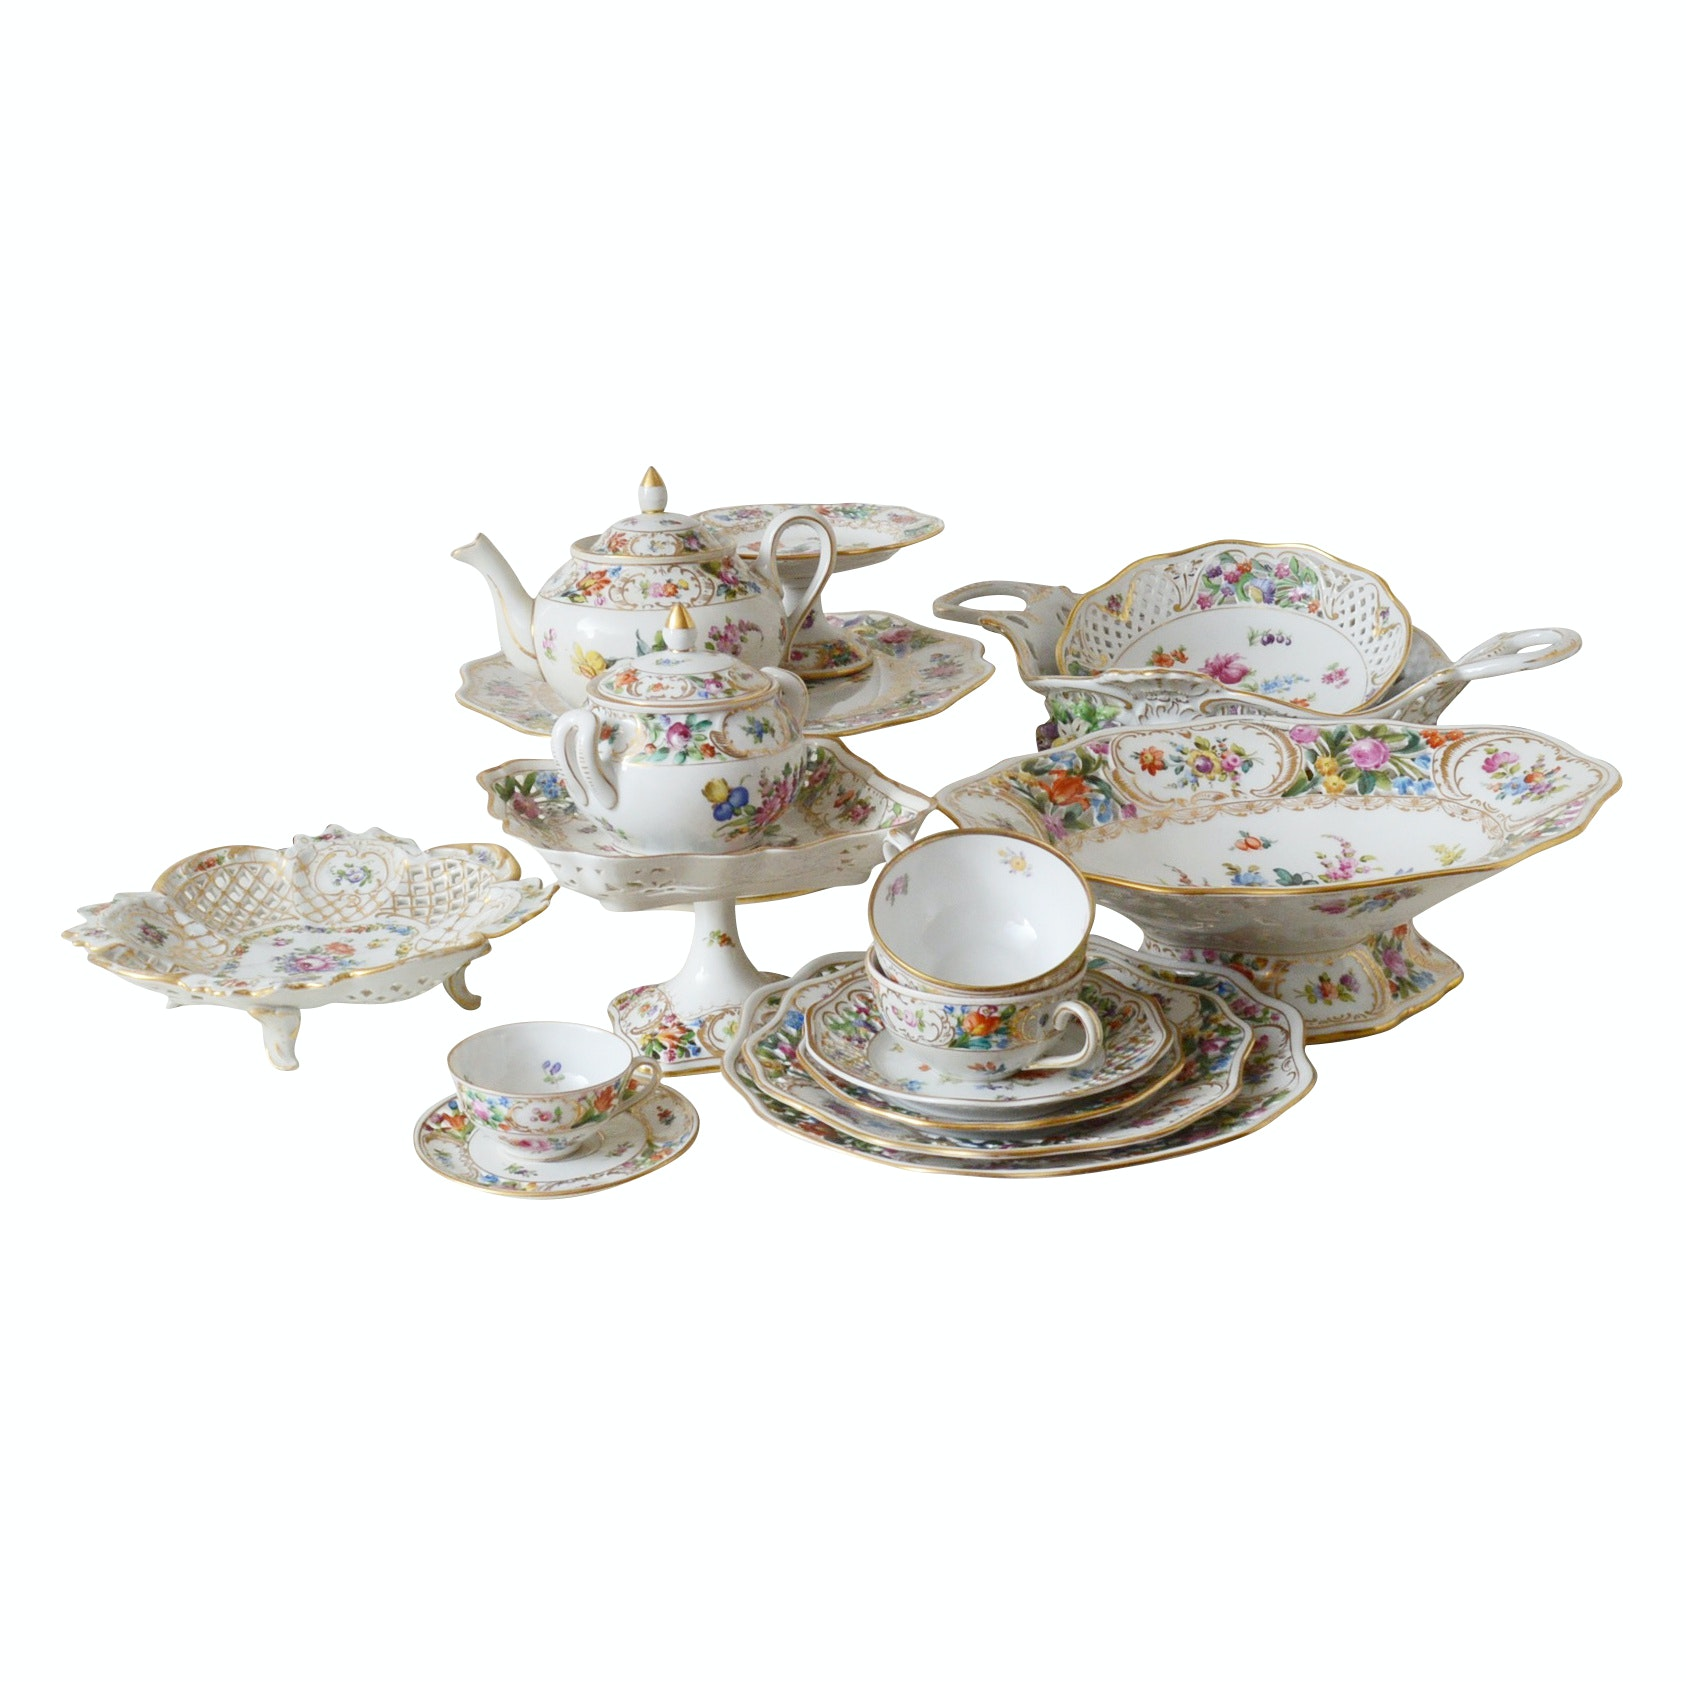 Collection of Mixed China by Dresden and Schumann